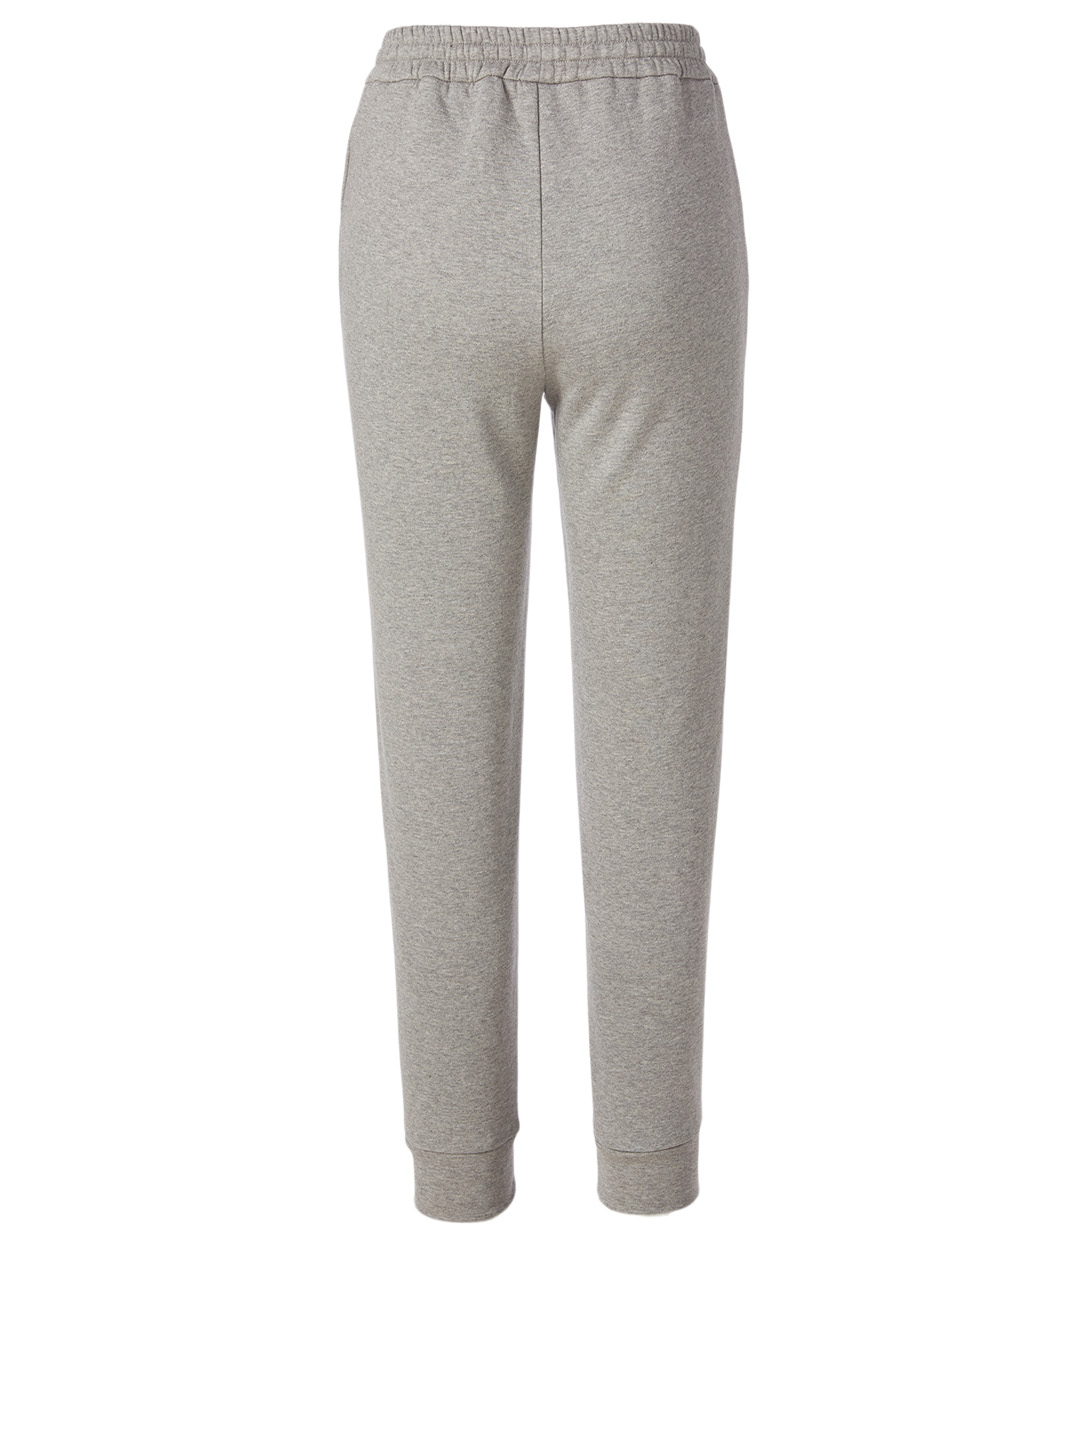 MONCLER Cotton-Blend Sweatpants Women's Grey